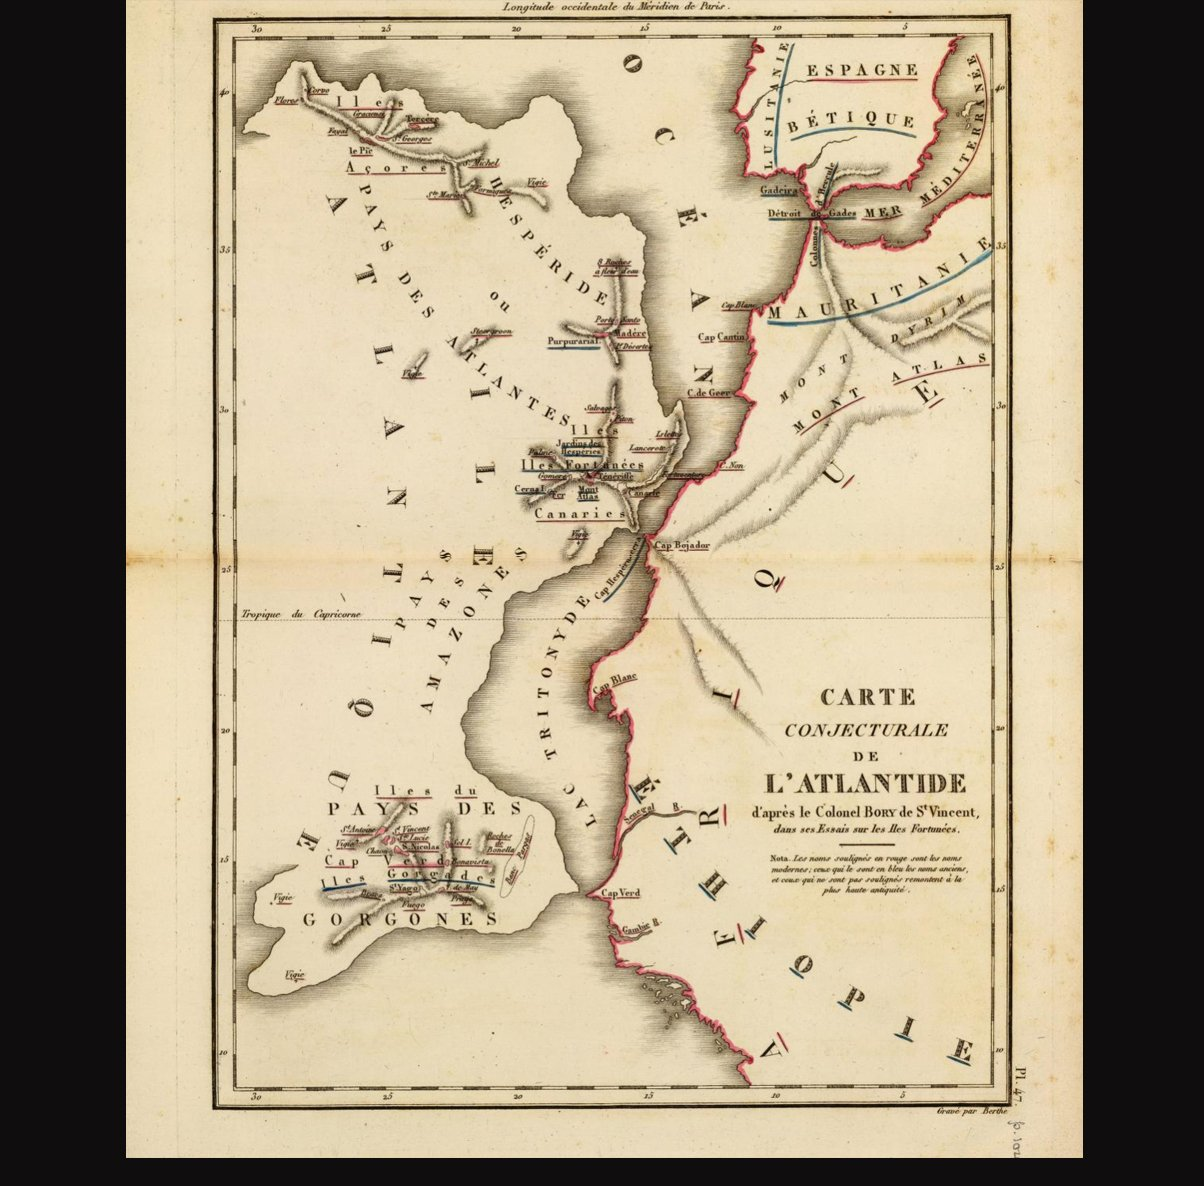 Original map of Atlantis dated 1803